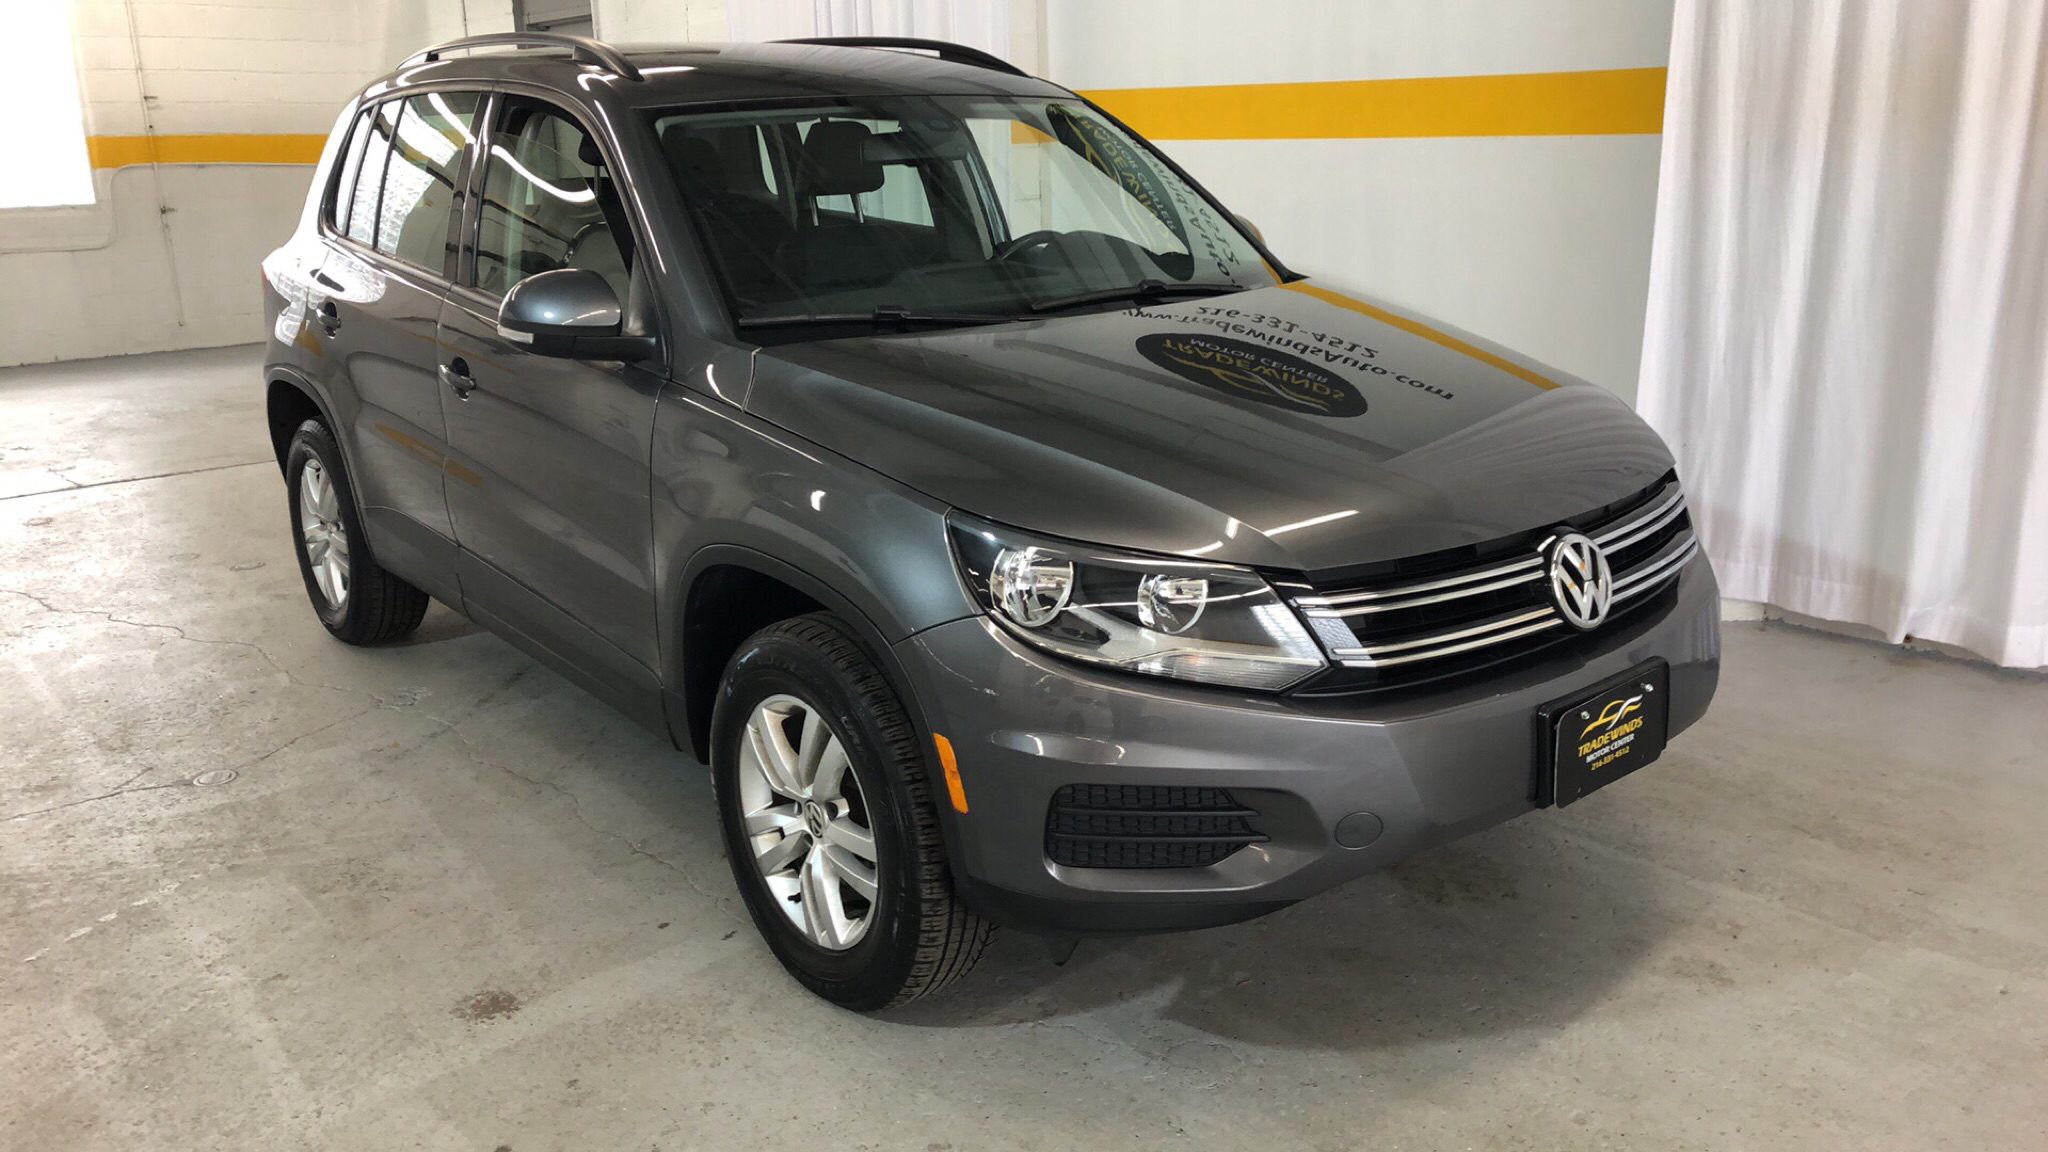 2016 VOLKSWAGEN TIGUAN SE for sale at Tradewinds Motor Center